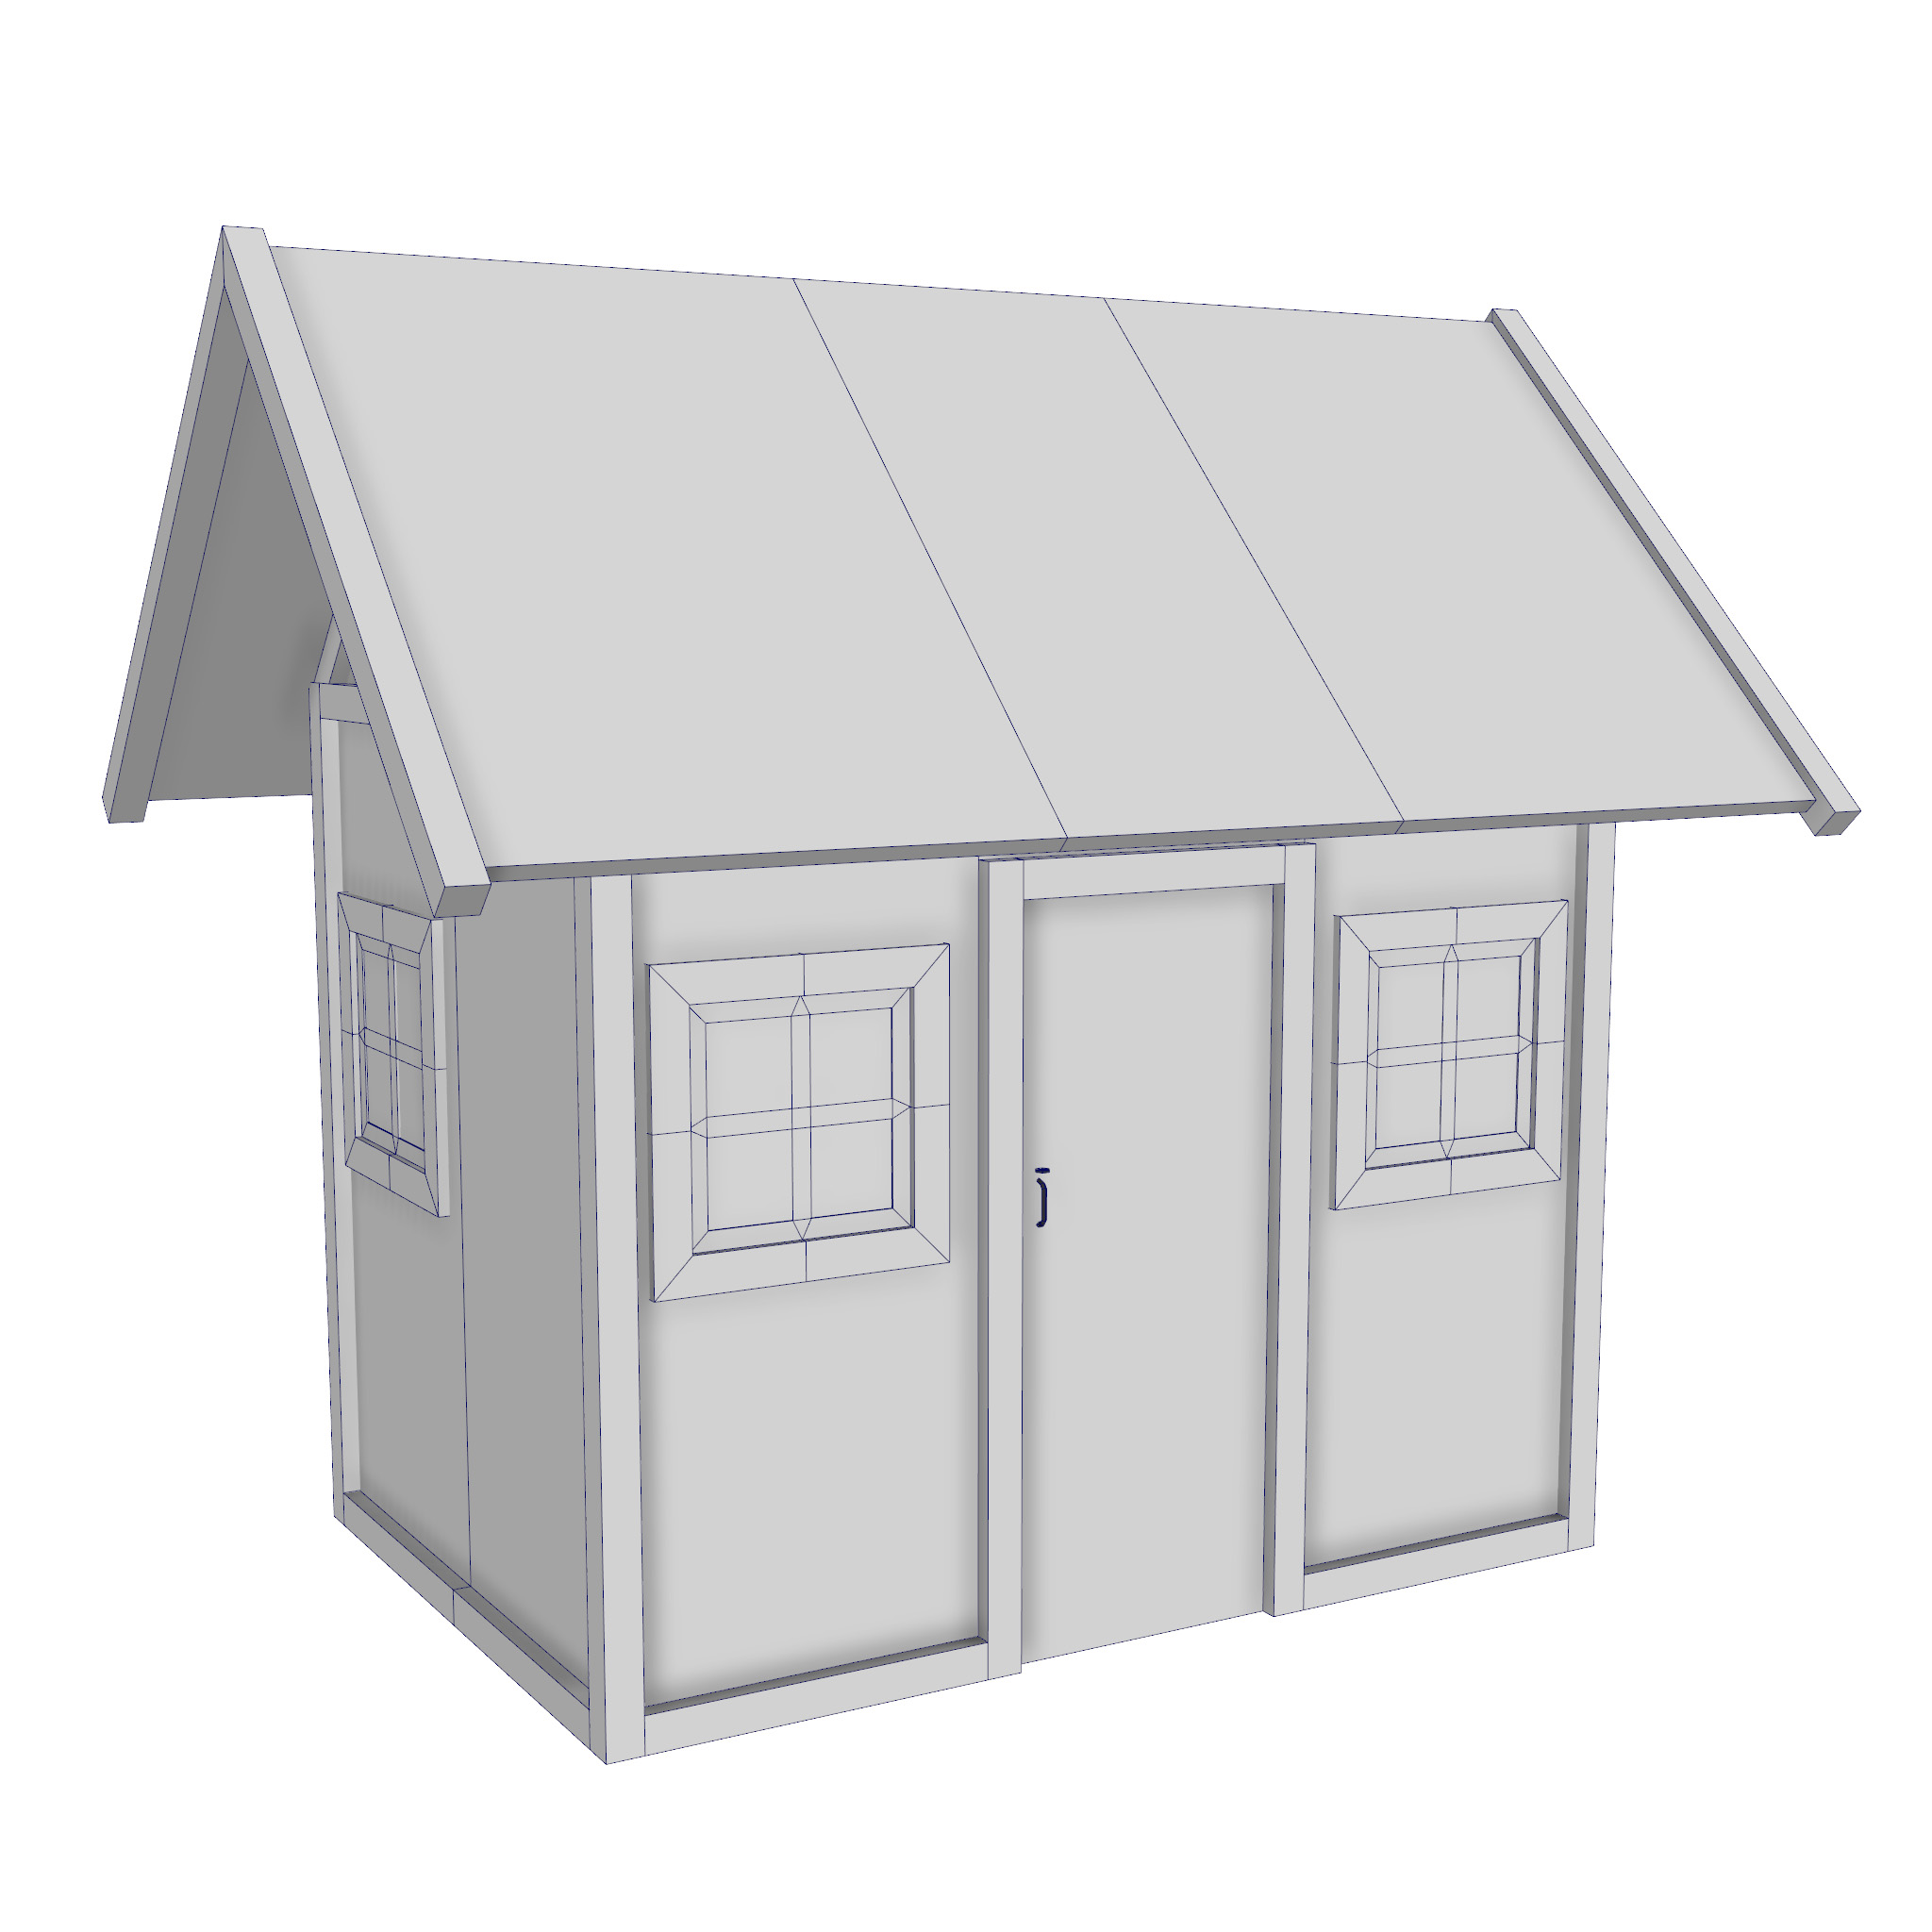 modular wood house set 3d model fbx ma mb 271456